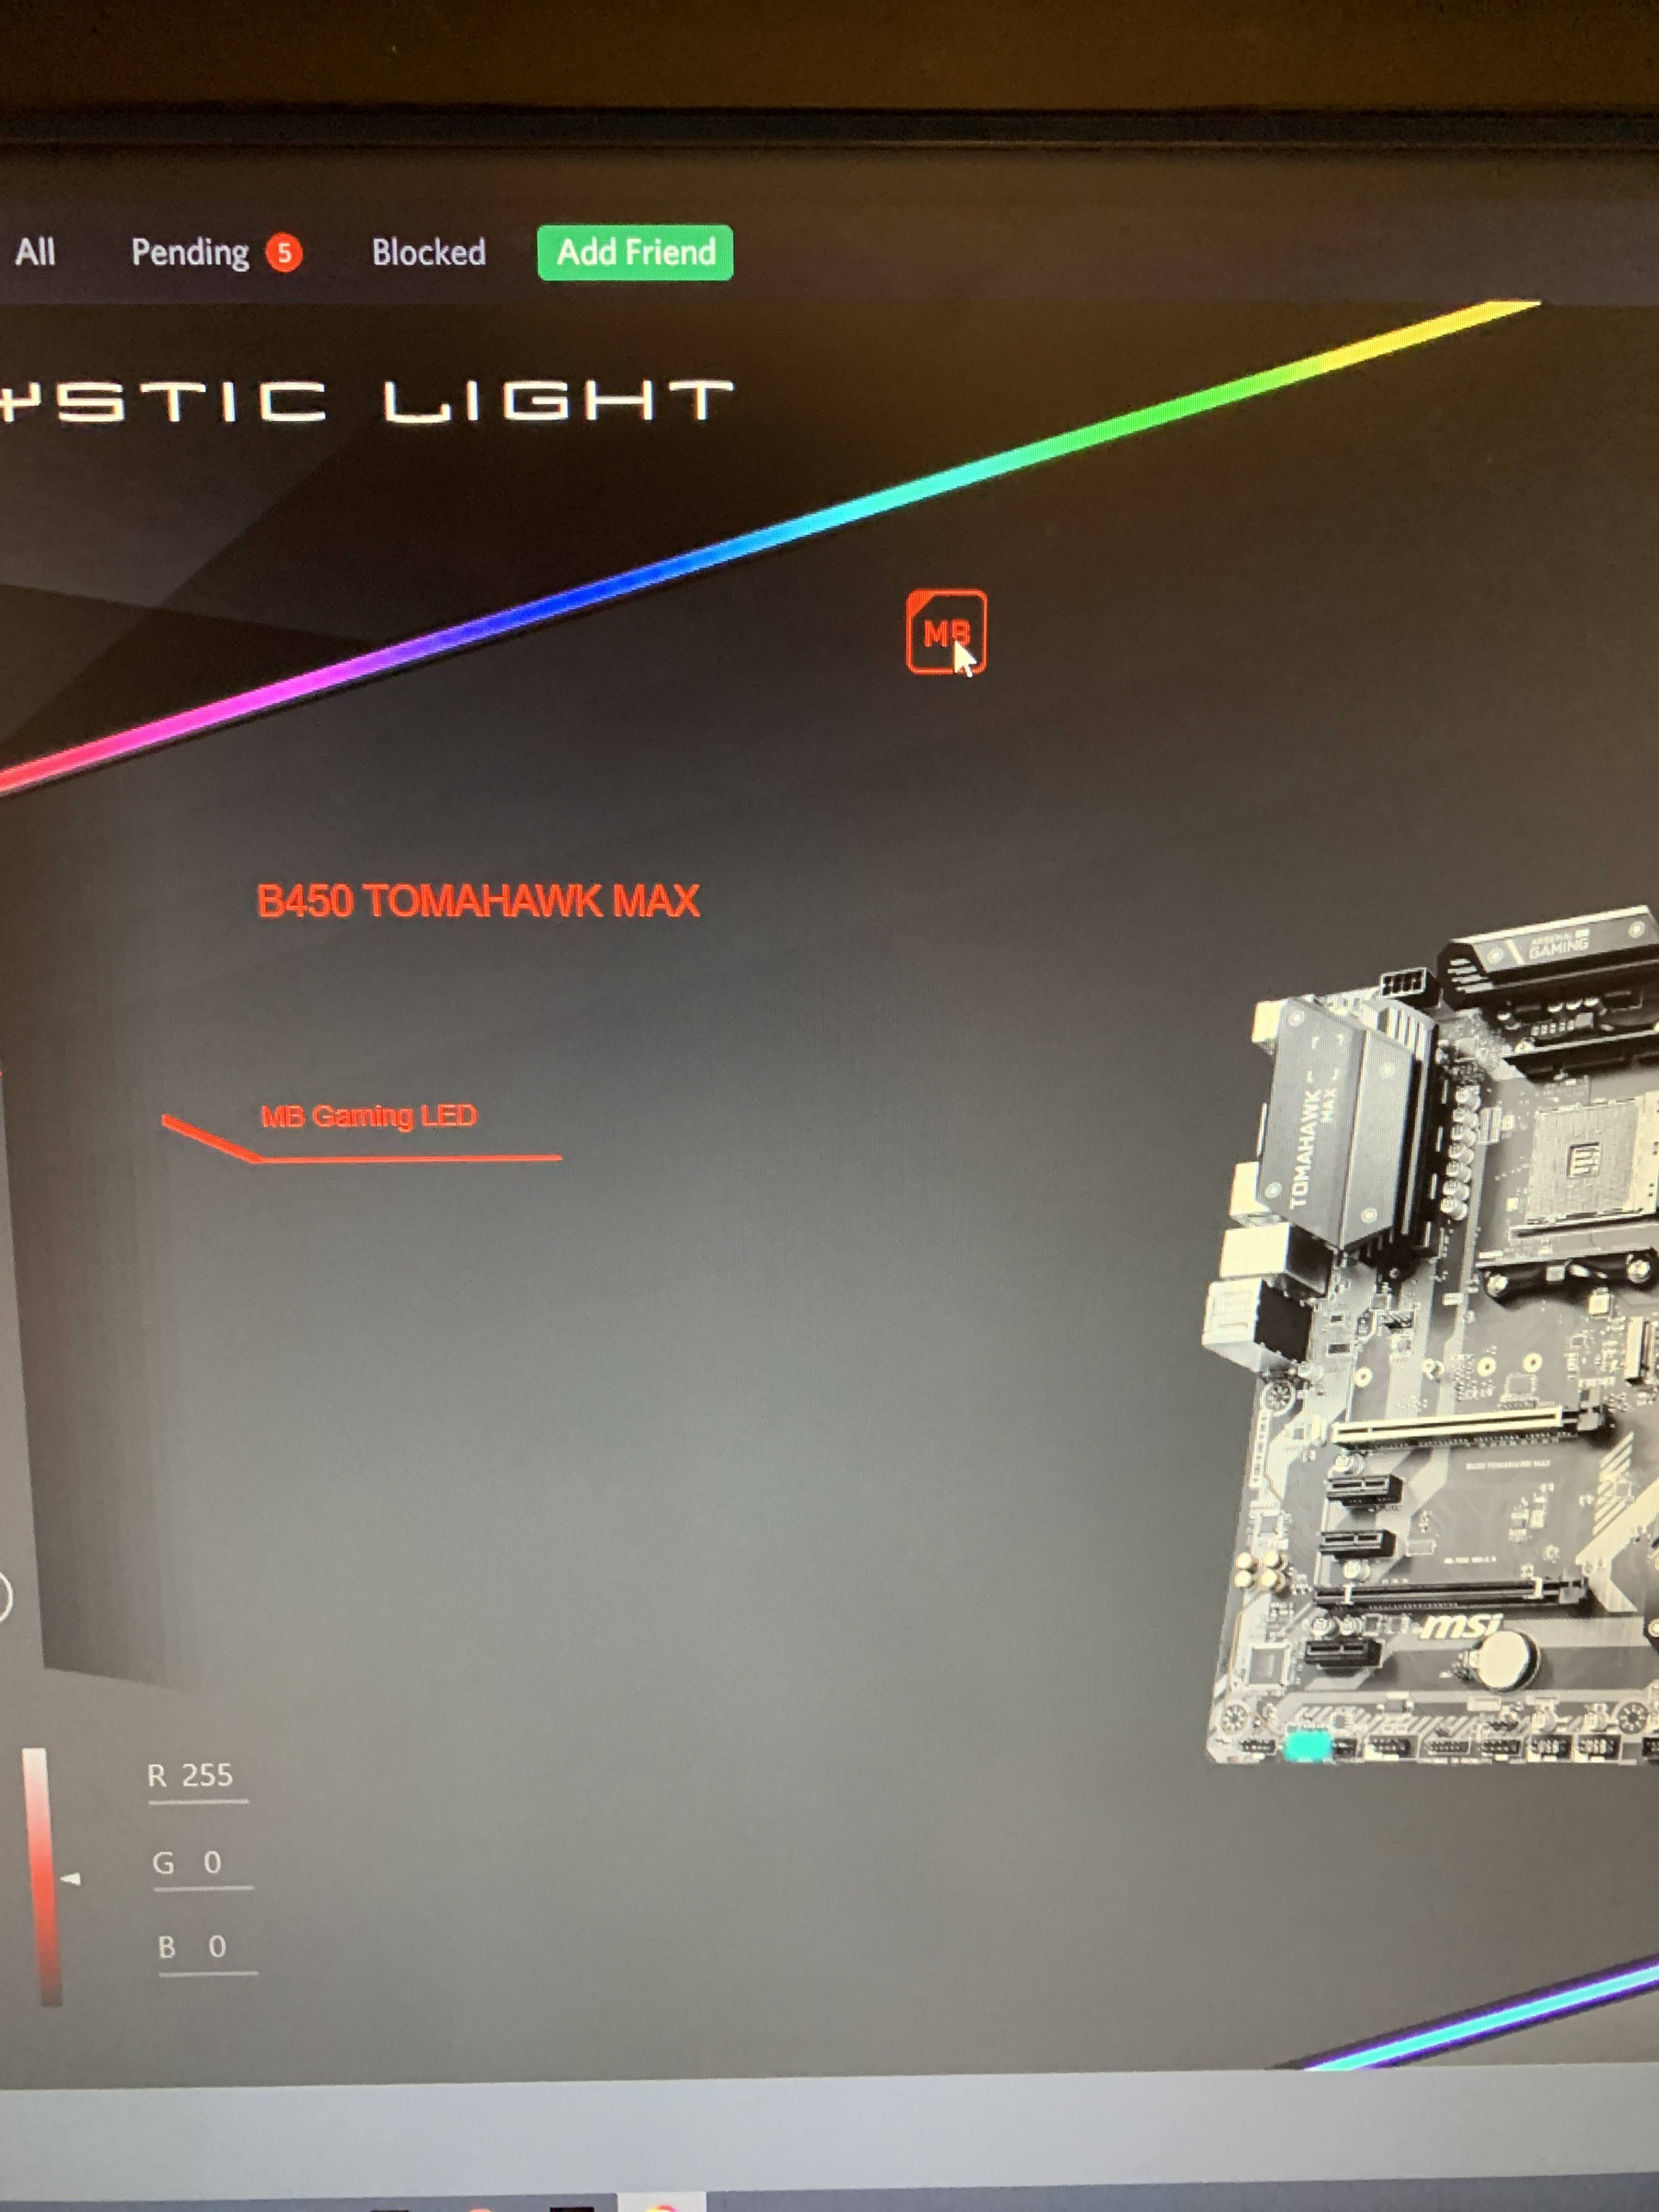 Msi Mystic Light Need Help Troubleshooting Linus Tech Tips Must i use both icue/link and msi mystic lighting software to control the rgb led lighting. msi mystic light need help